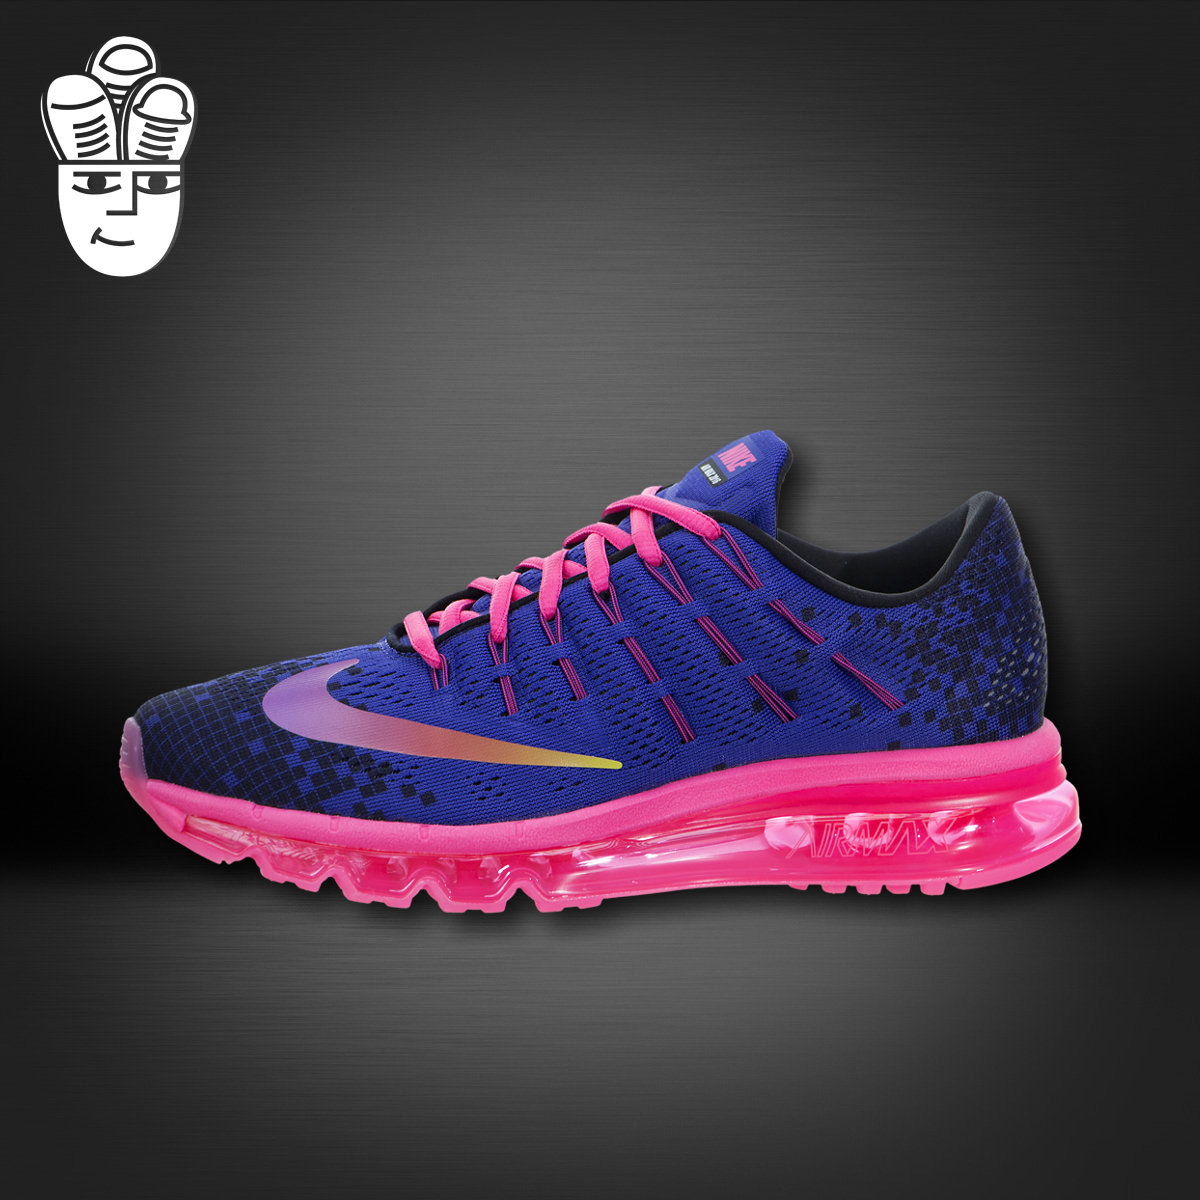 a2a87f28b34 Get Quotations · Nike air max 2016 print (kids) nike entire palm cushion  running shoes adolescent girls